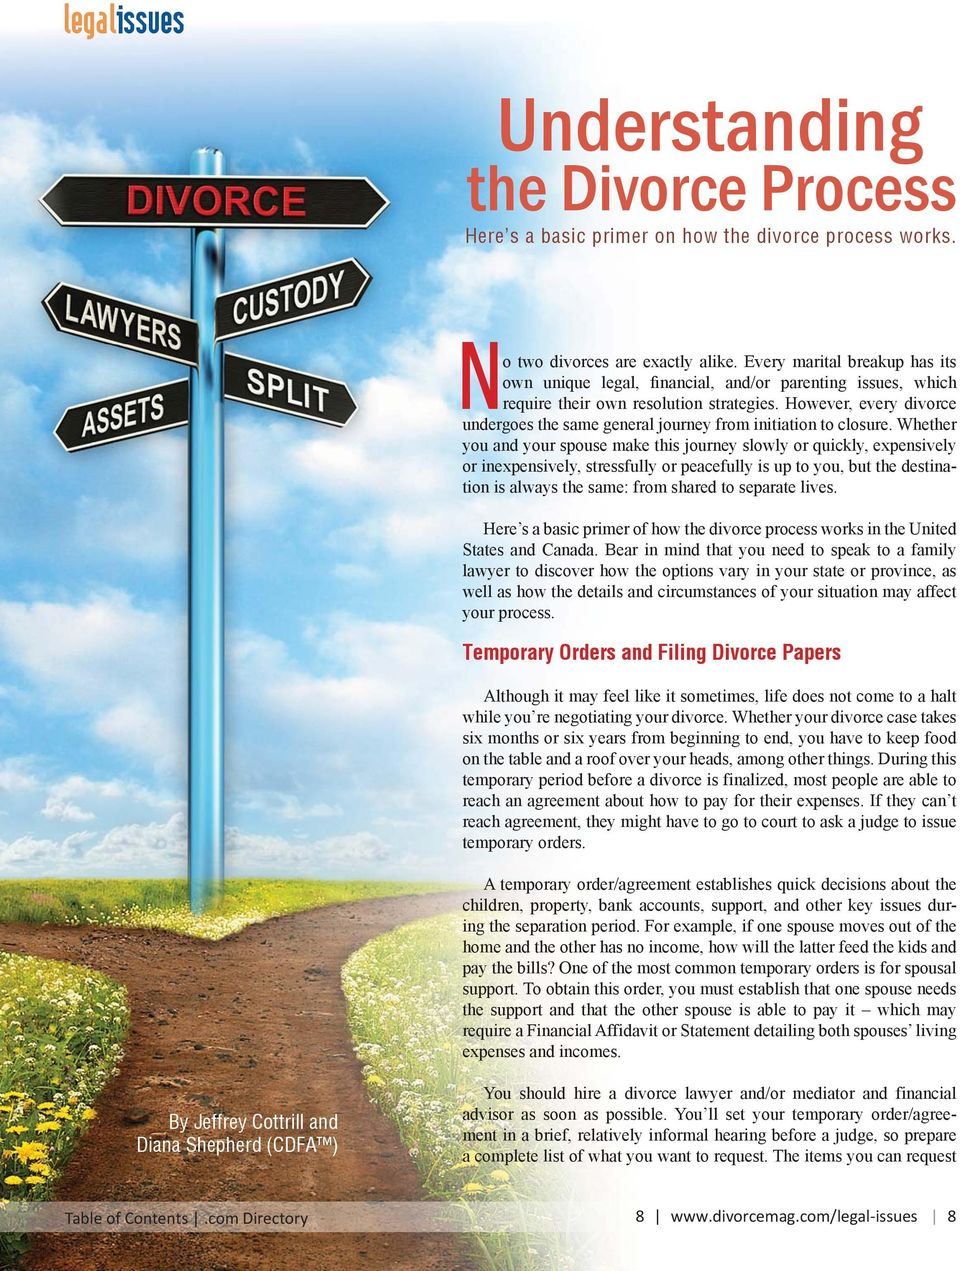 However, every divorce undergoes the same general journey from initiation to closure.